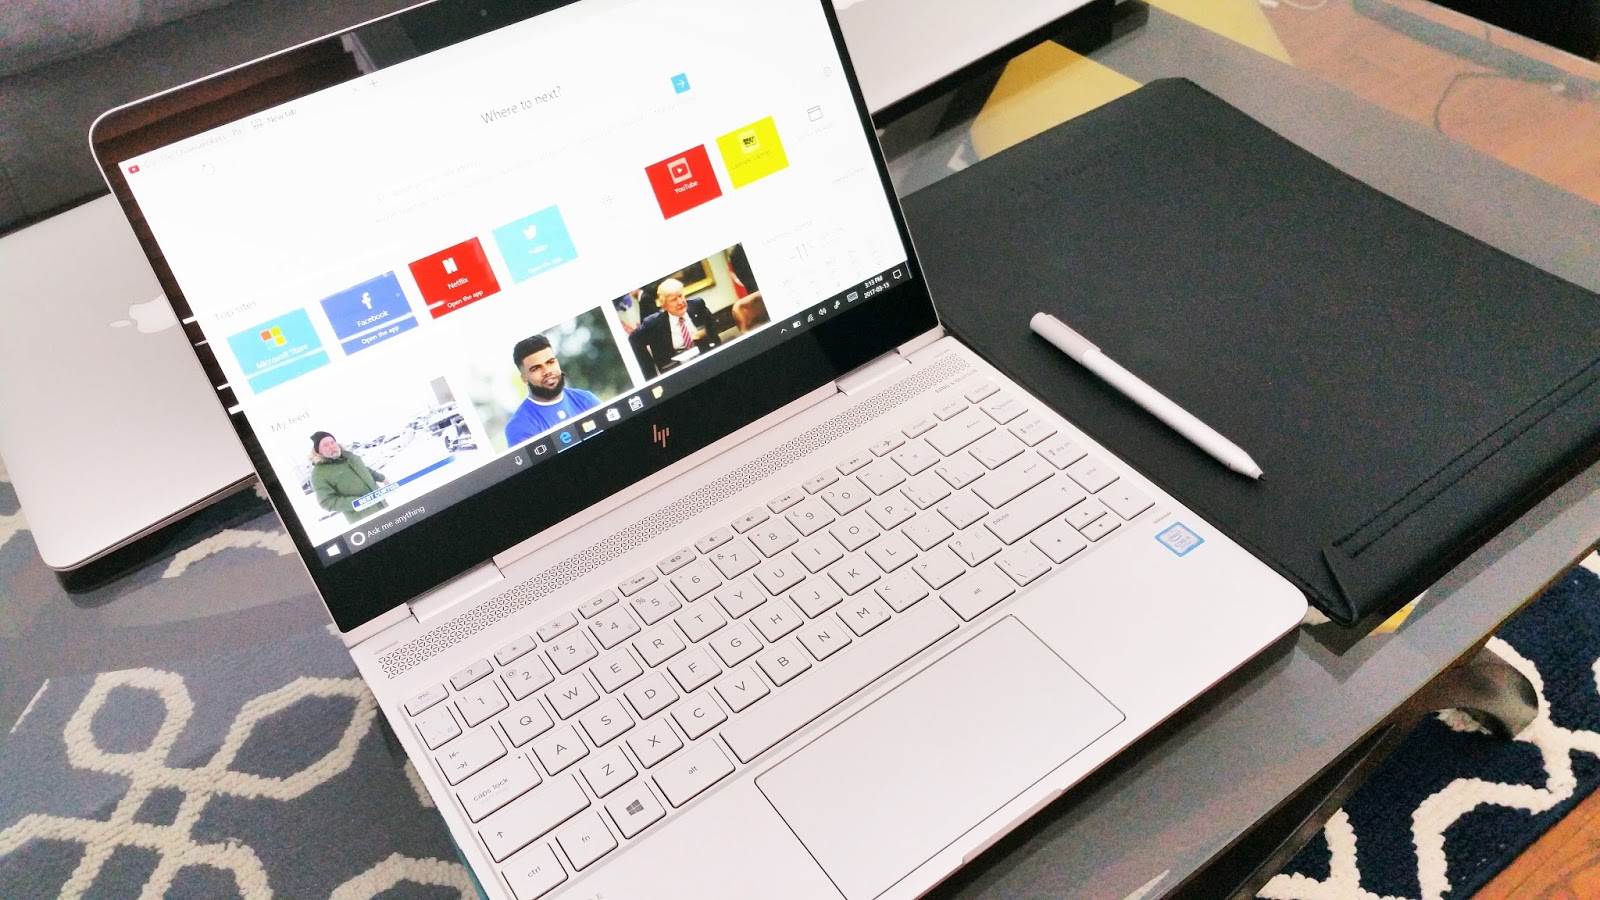 The Hp Spectre X360 133 Touchscreen Pen Model 13 Ac010ca Huawei Ascend Y520 Kitkat Dual Camera Hitam If You Think About It Comes With So Much More Performance And Accessories For Price Pay Especially When Compared To A Macbook Pro Or